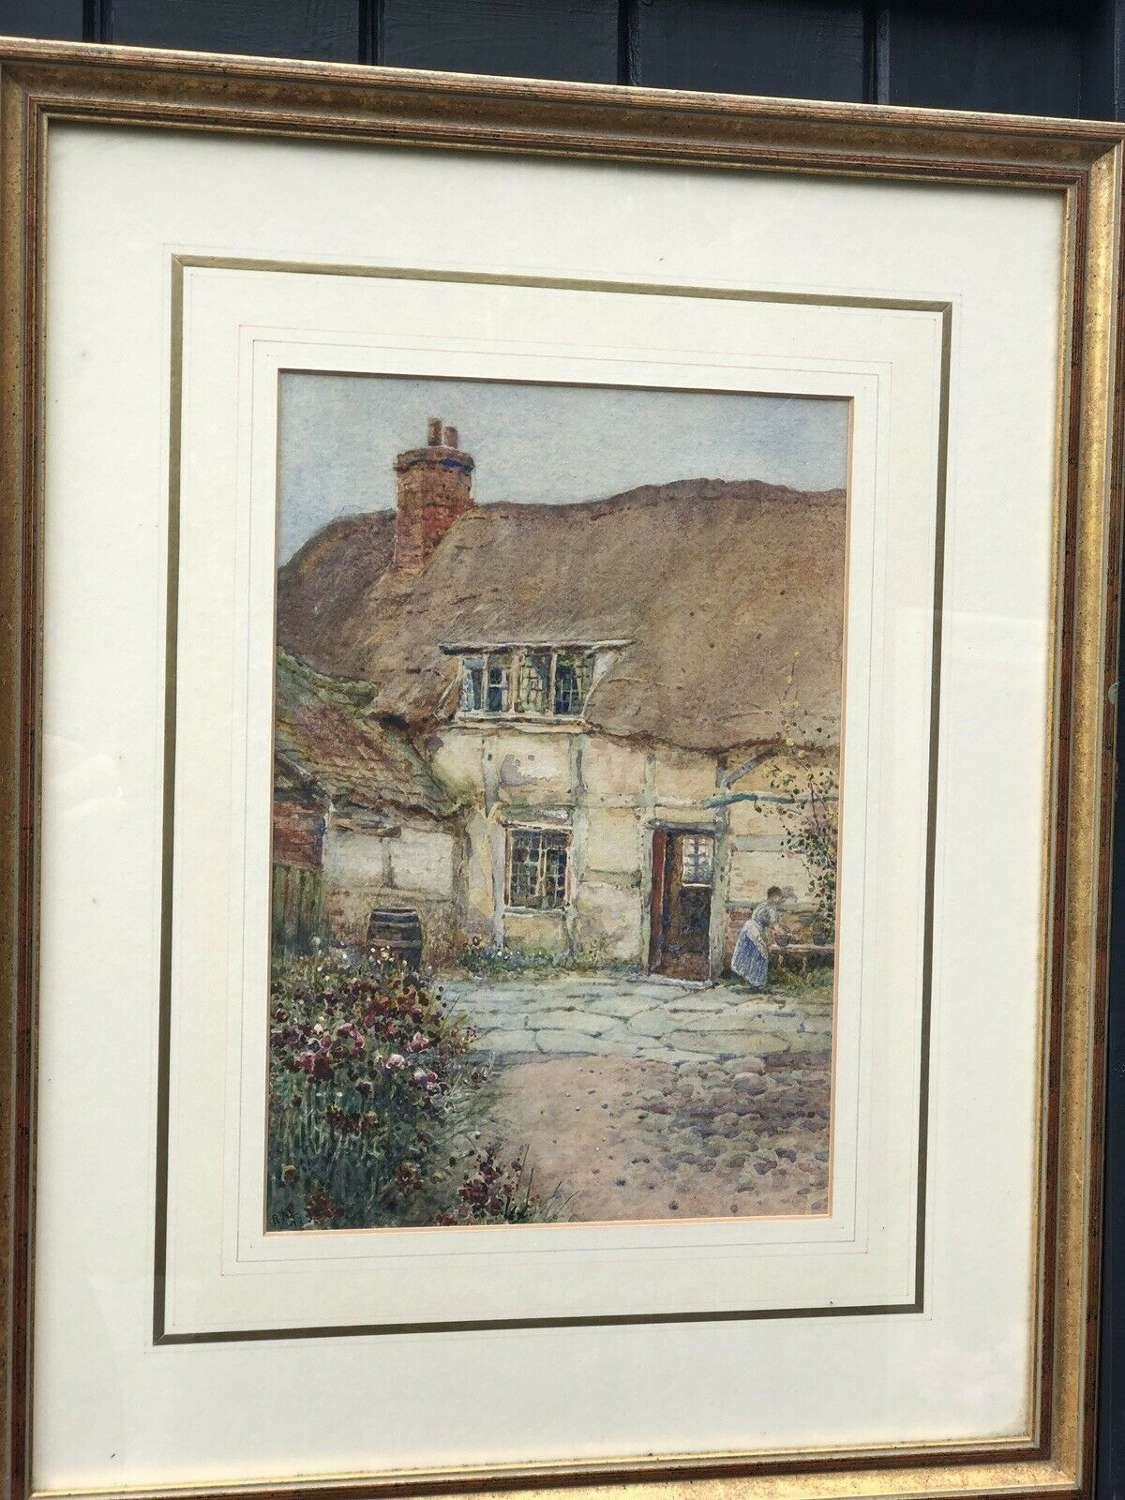 English Cottage watercolour